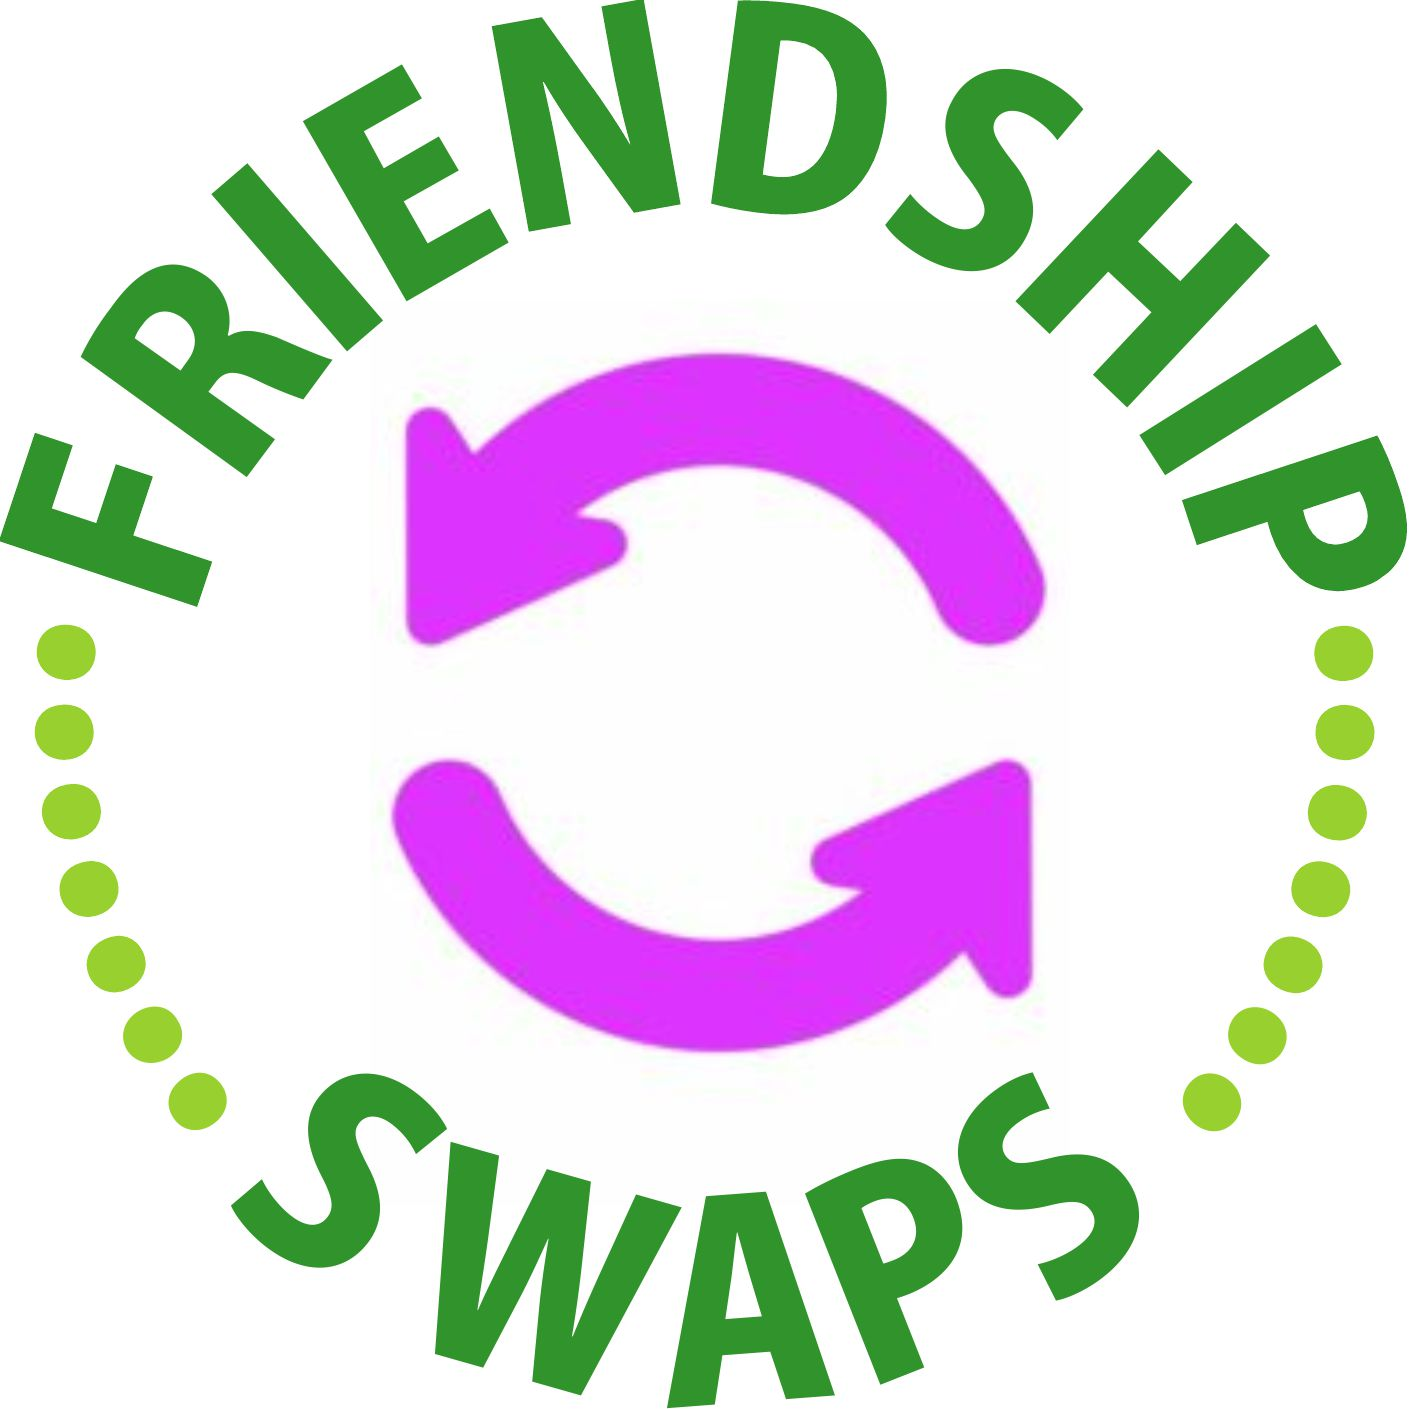 Friendship SWAPS are a long-time Girl Scout Tradition. We offer a place to get ideas and also a place to trade your SWAPS! #friendshipswaps #swaps #girlscoutswaps #gsswaps #trading #postcards #artists #cards #exchange #makingfriends #tradition